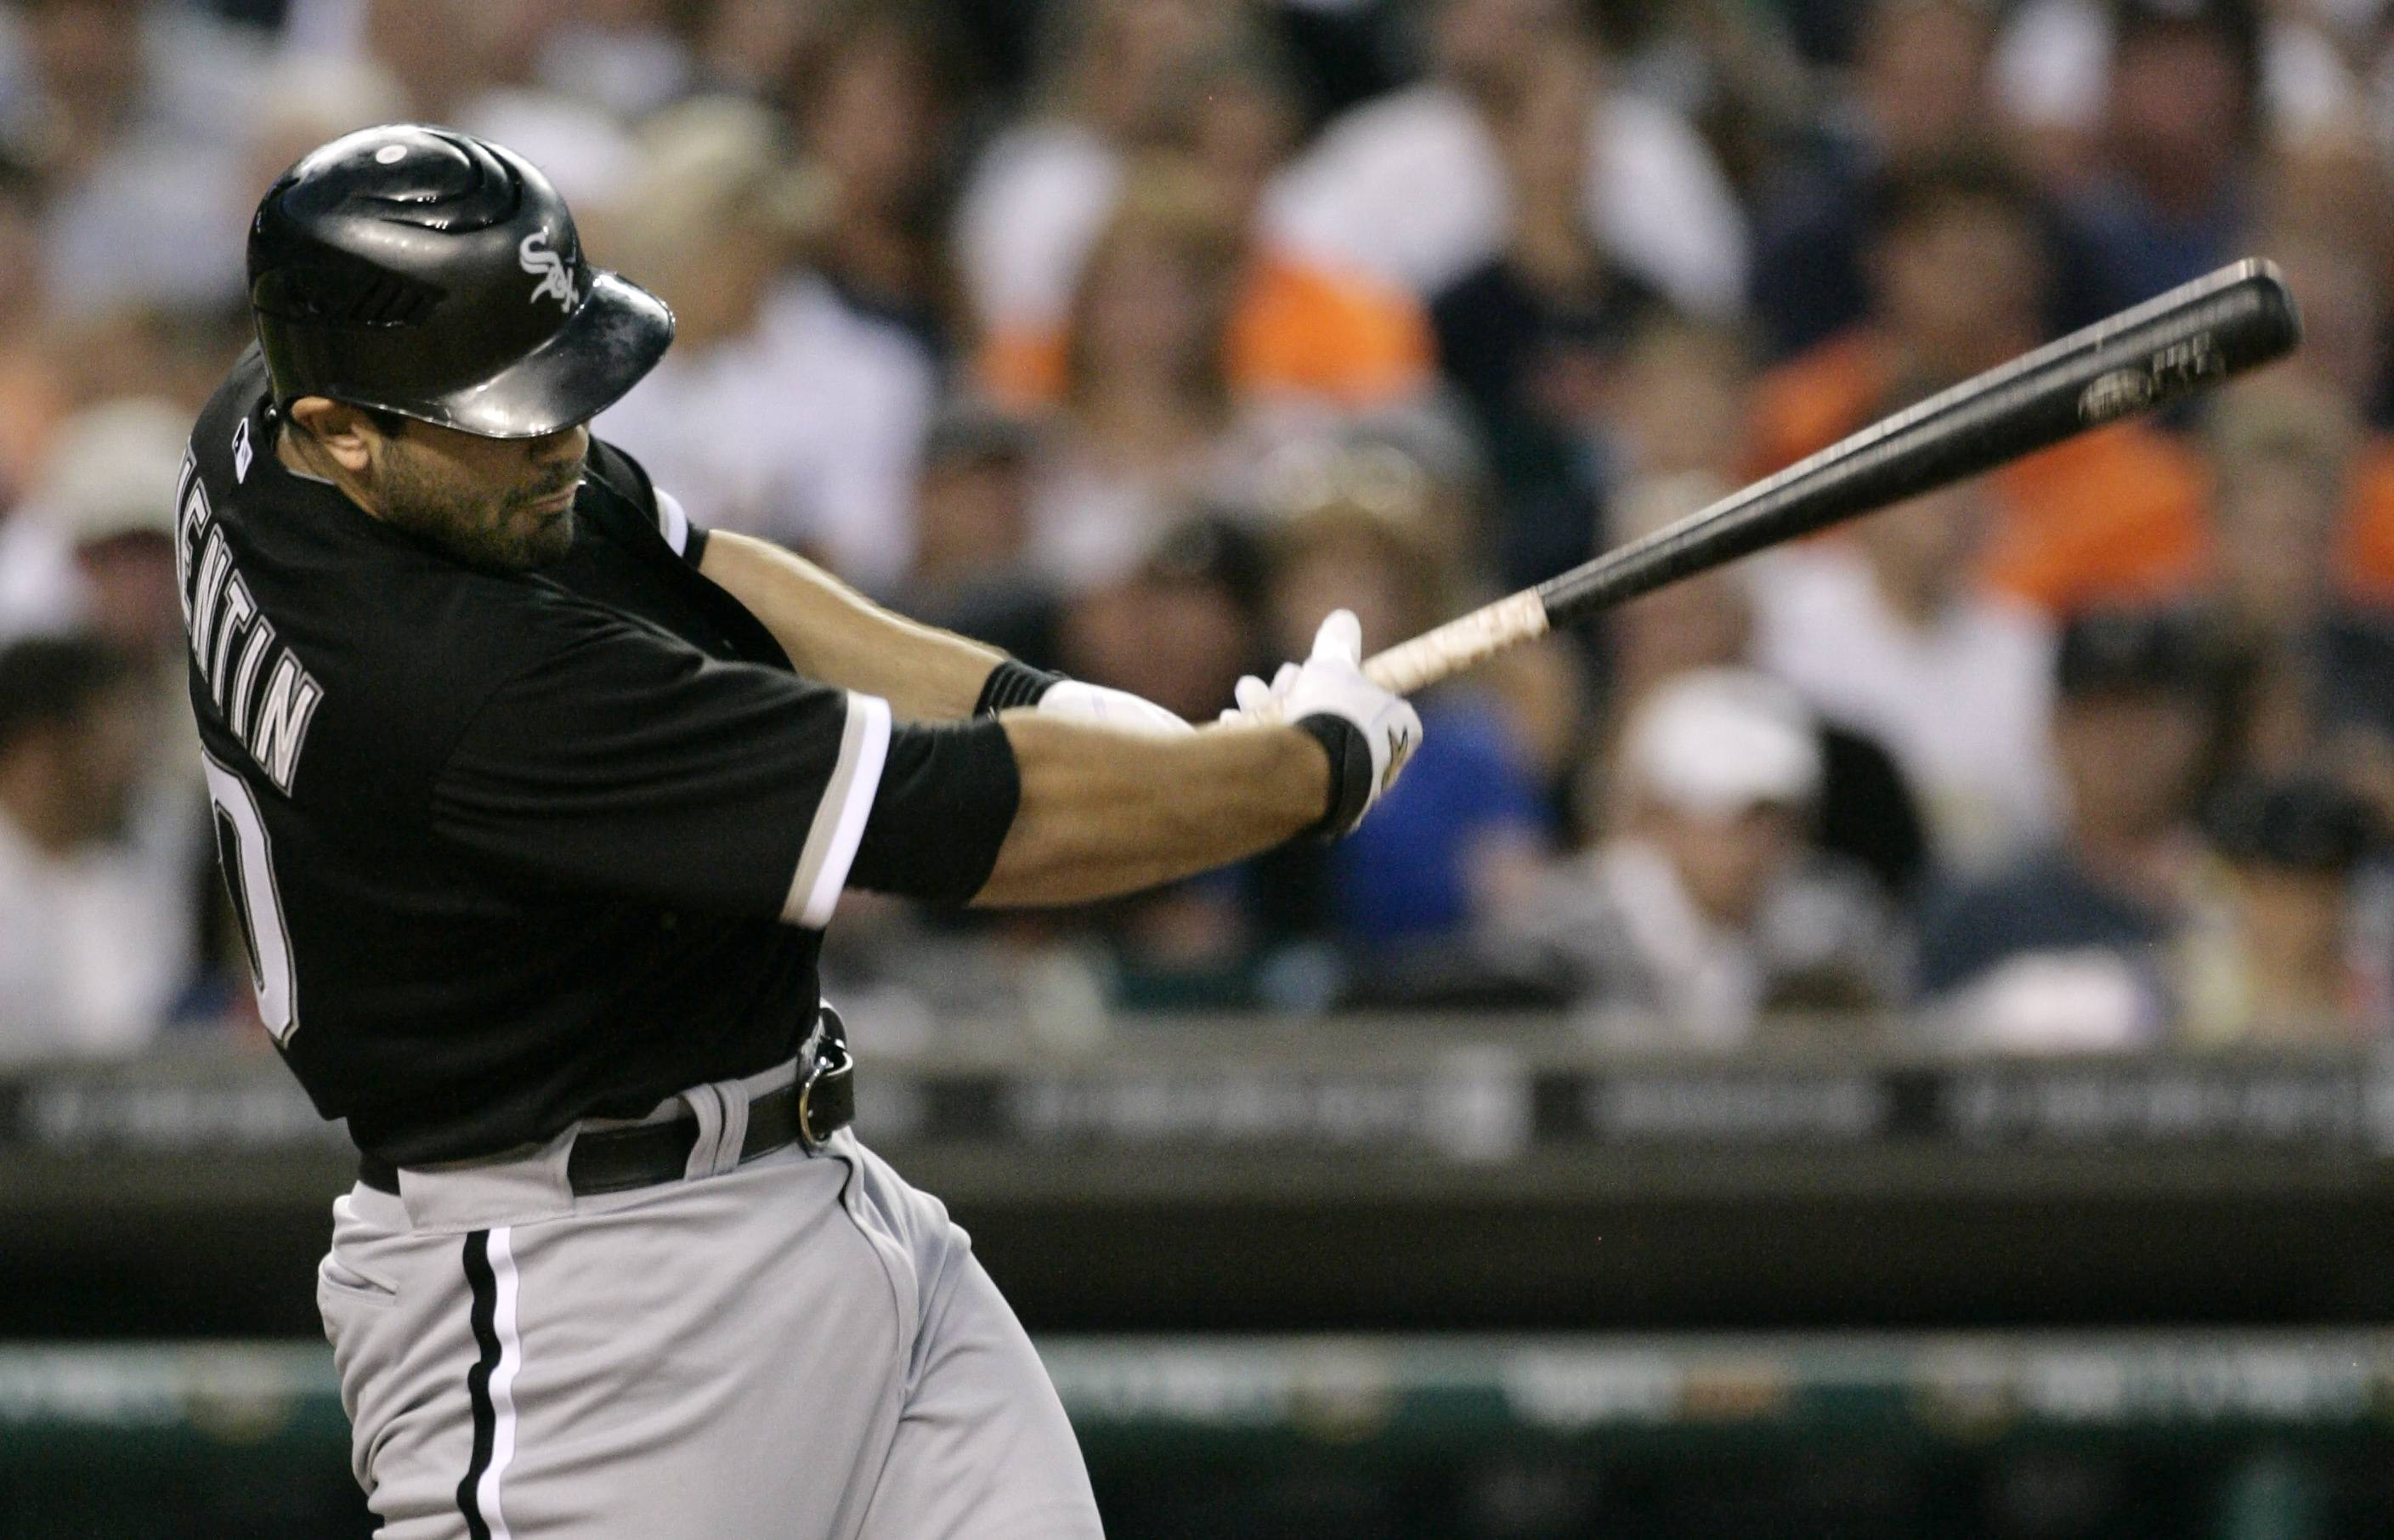 Carlos Quentin singles in the seventh inning Friday to drive in Paul Konerko against the Detroit Tigers.